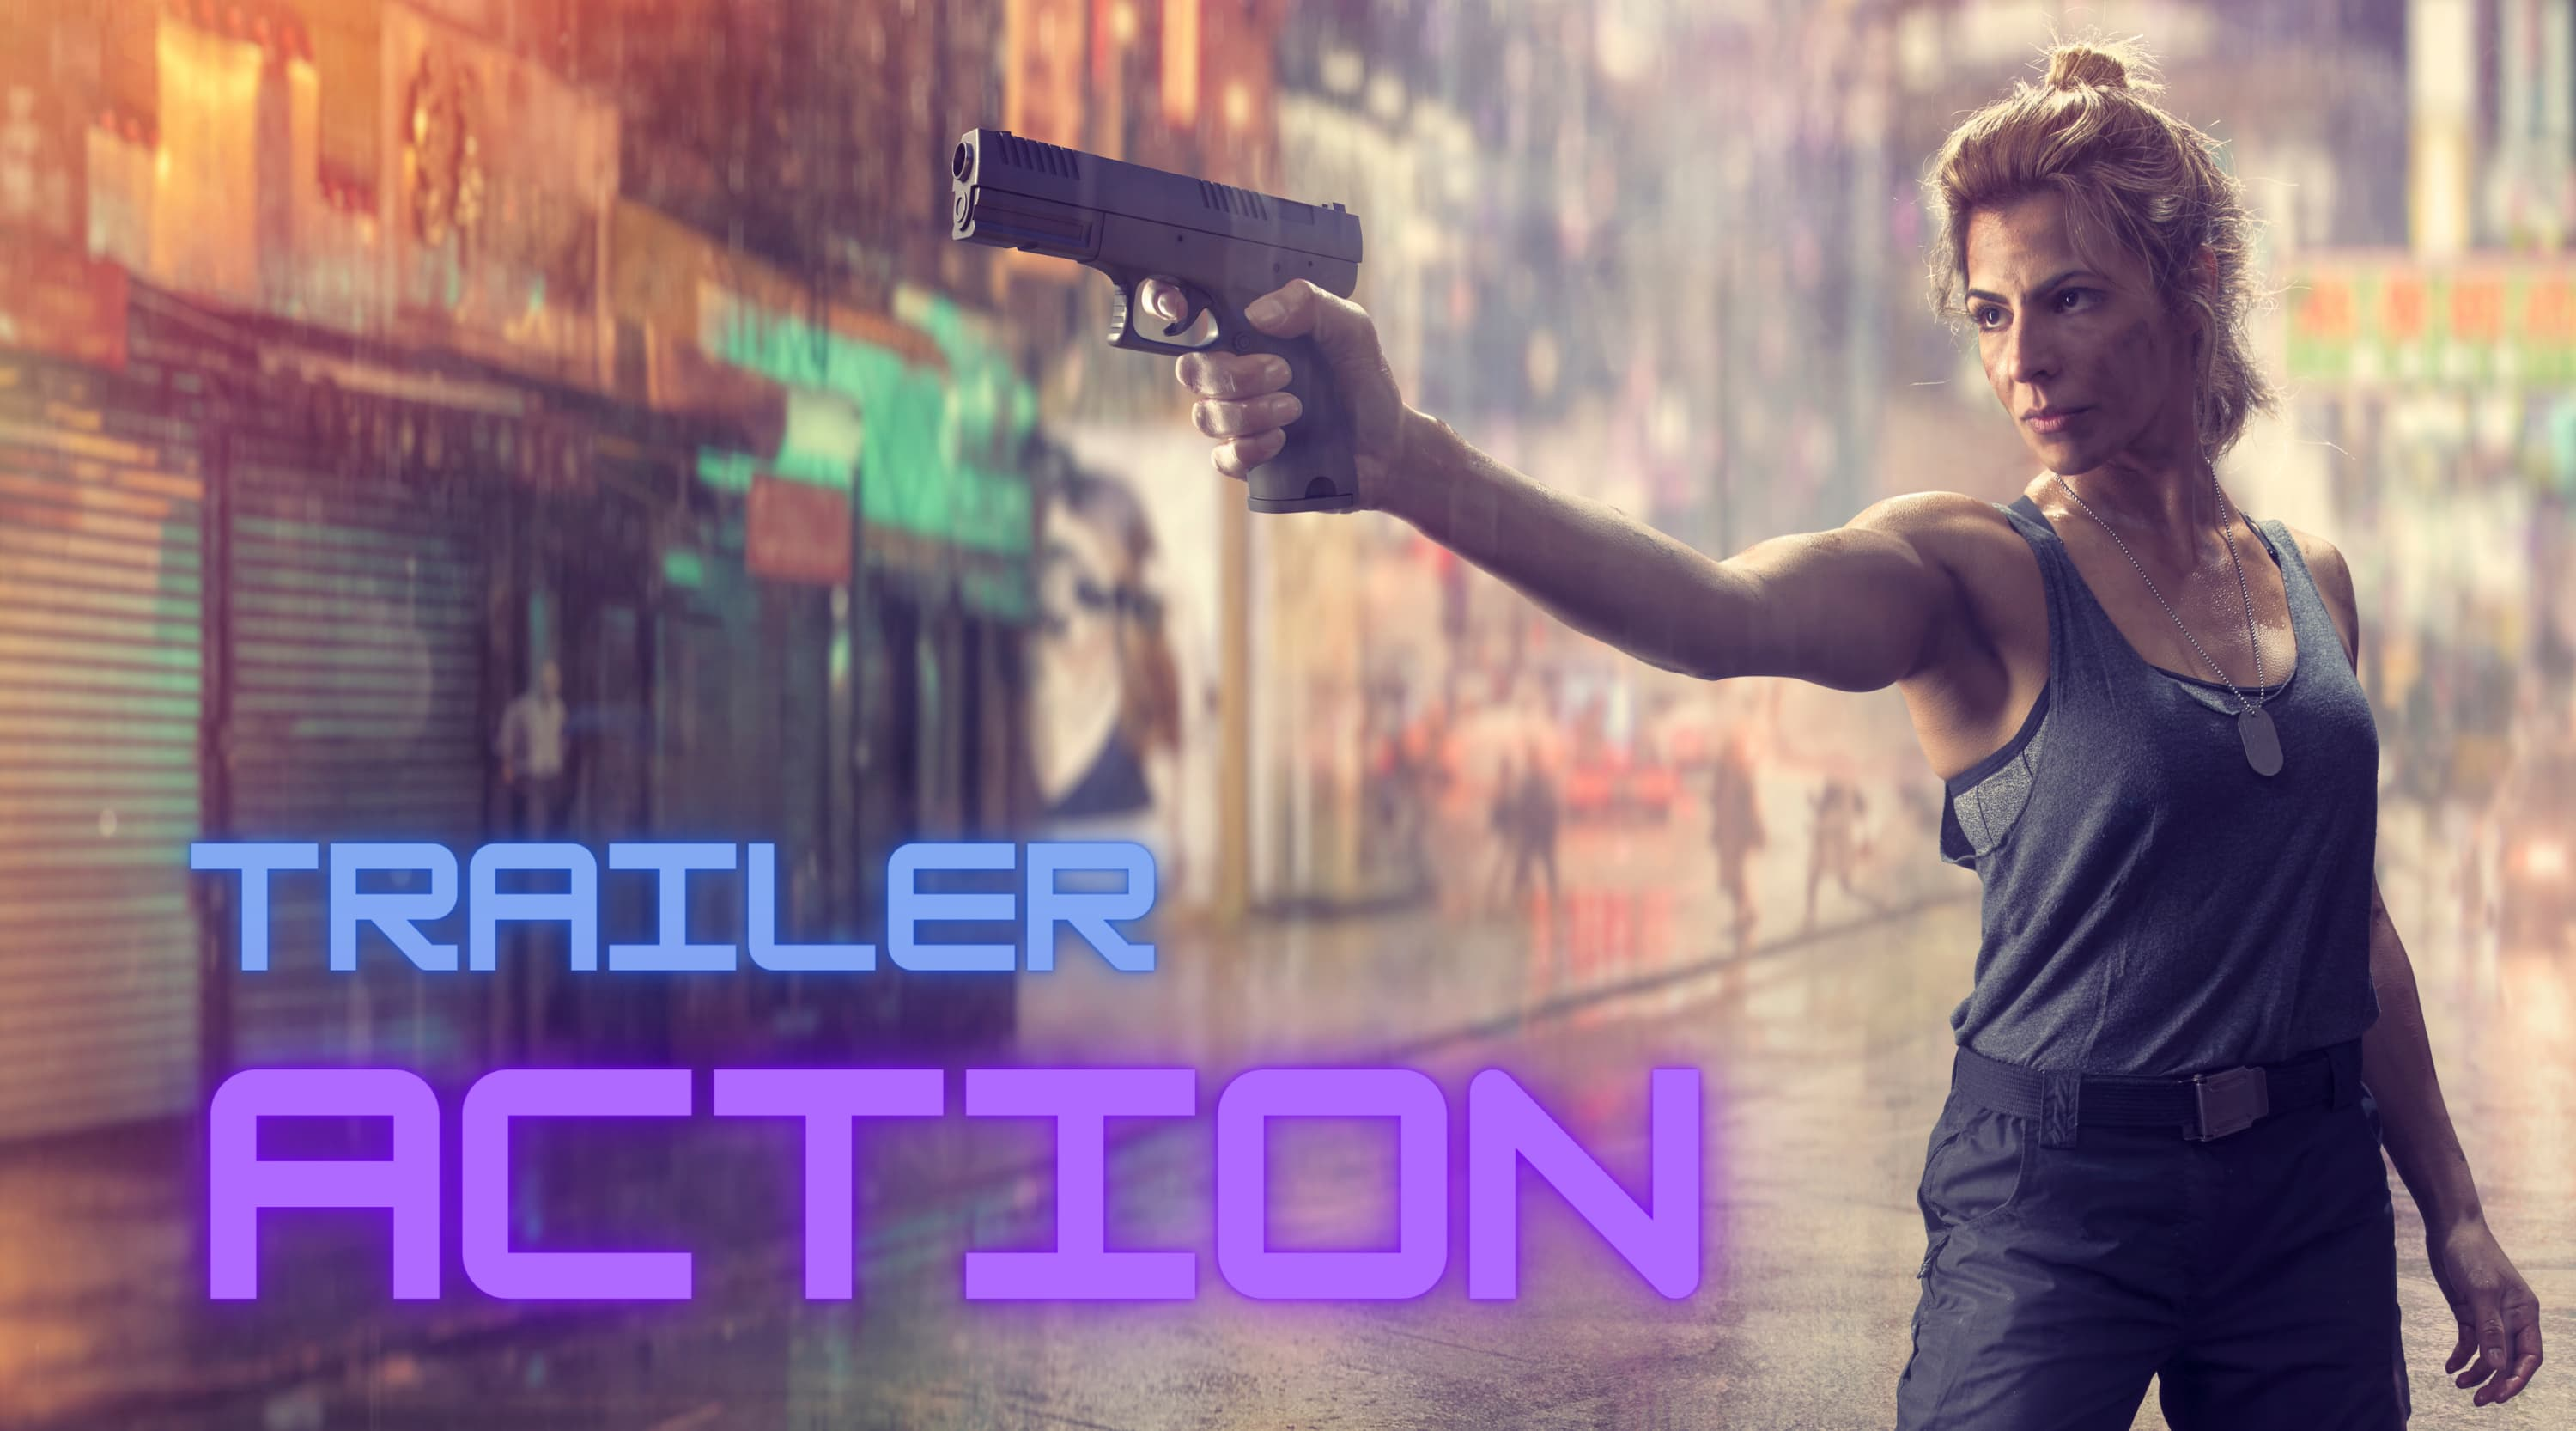 Trailer Special: Ready, Set, Action